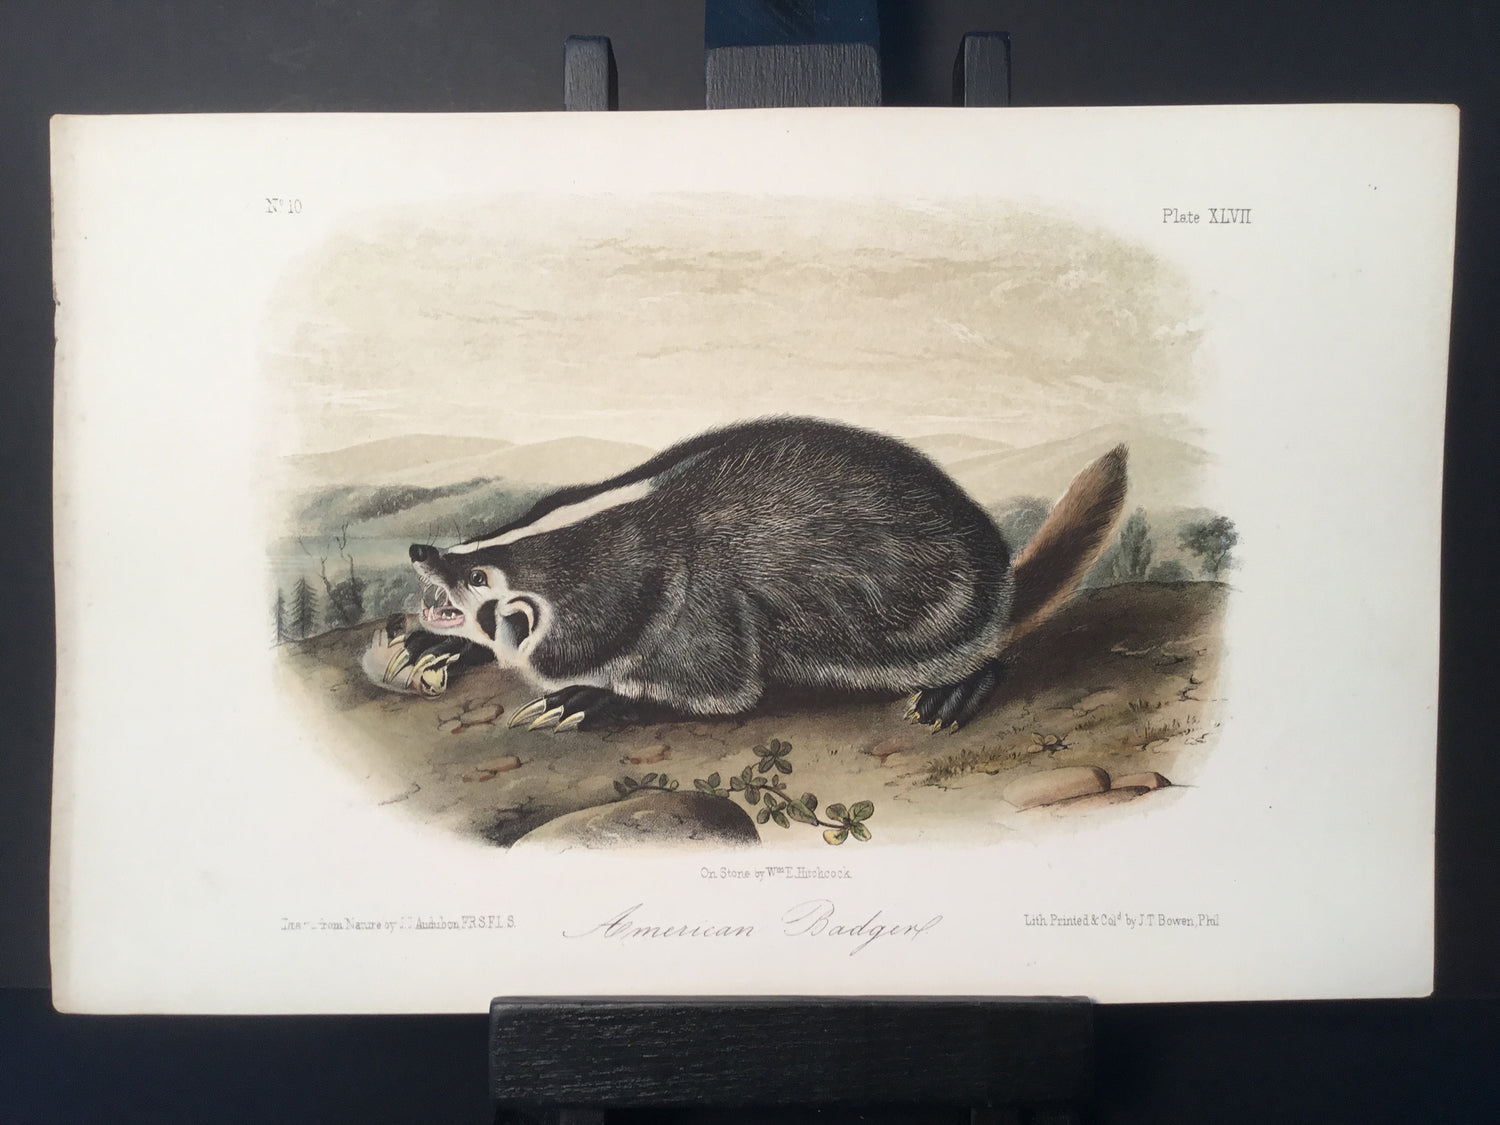 Lord-Hopkins Collection - American Badger